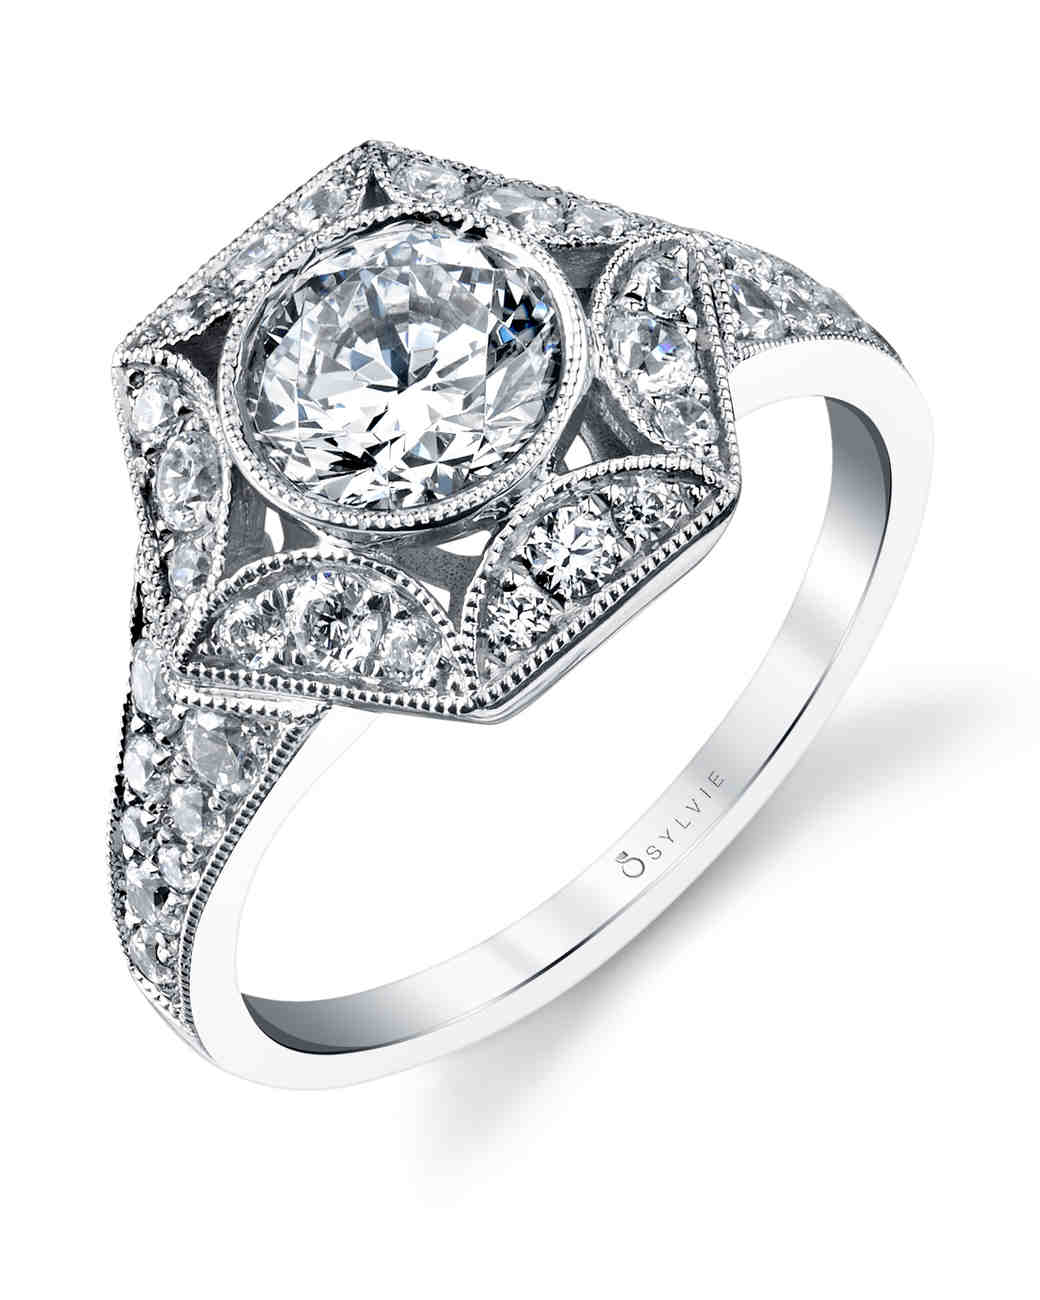 Sylvie Collection vintage-inspired engagement ring with diamond halo and cutouts